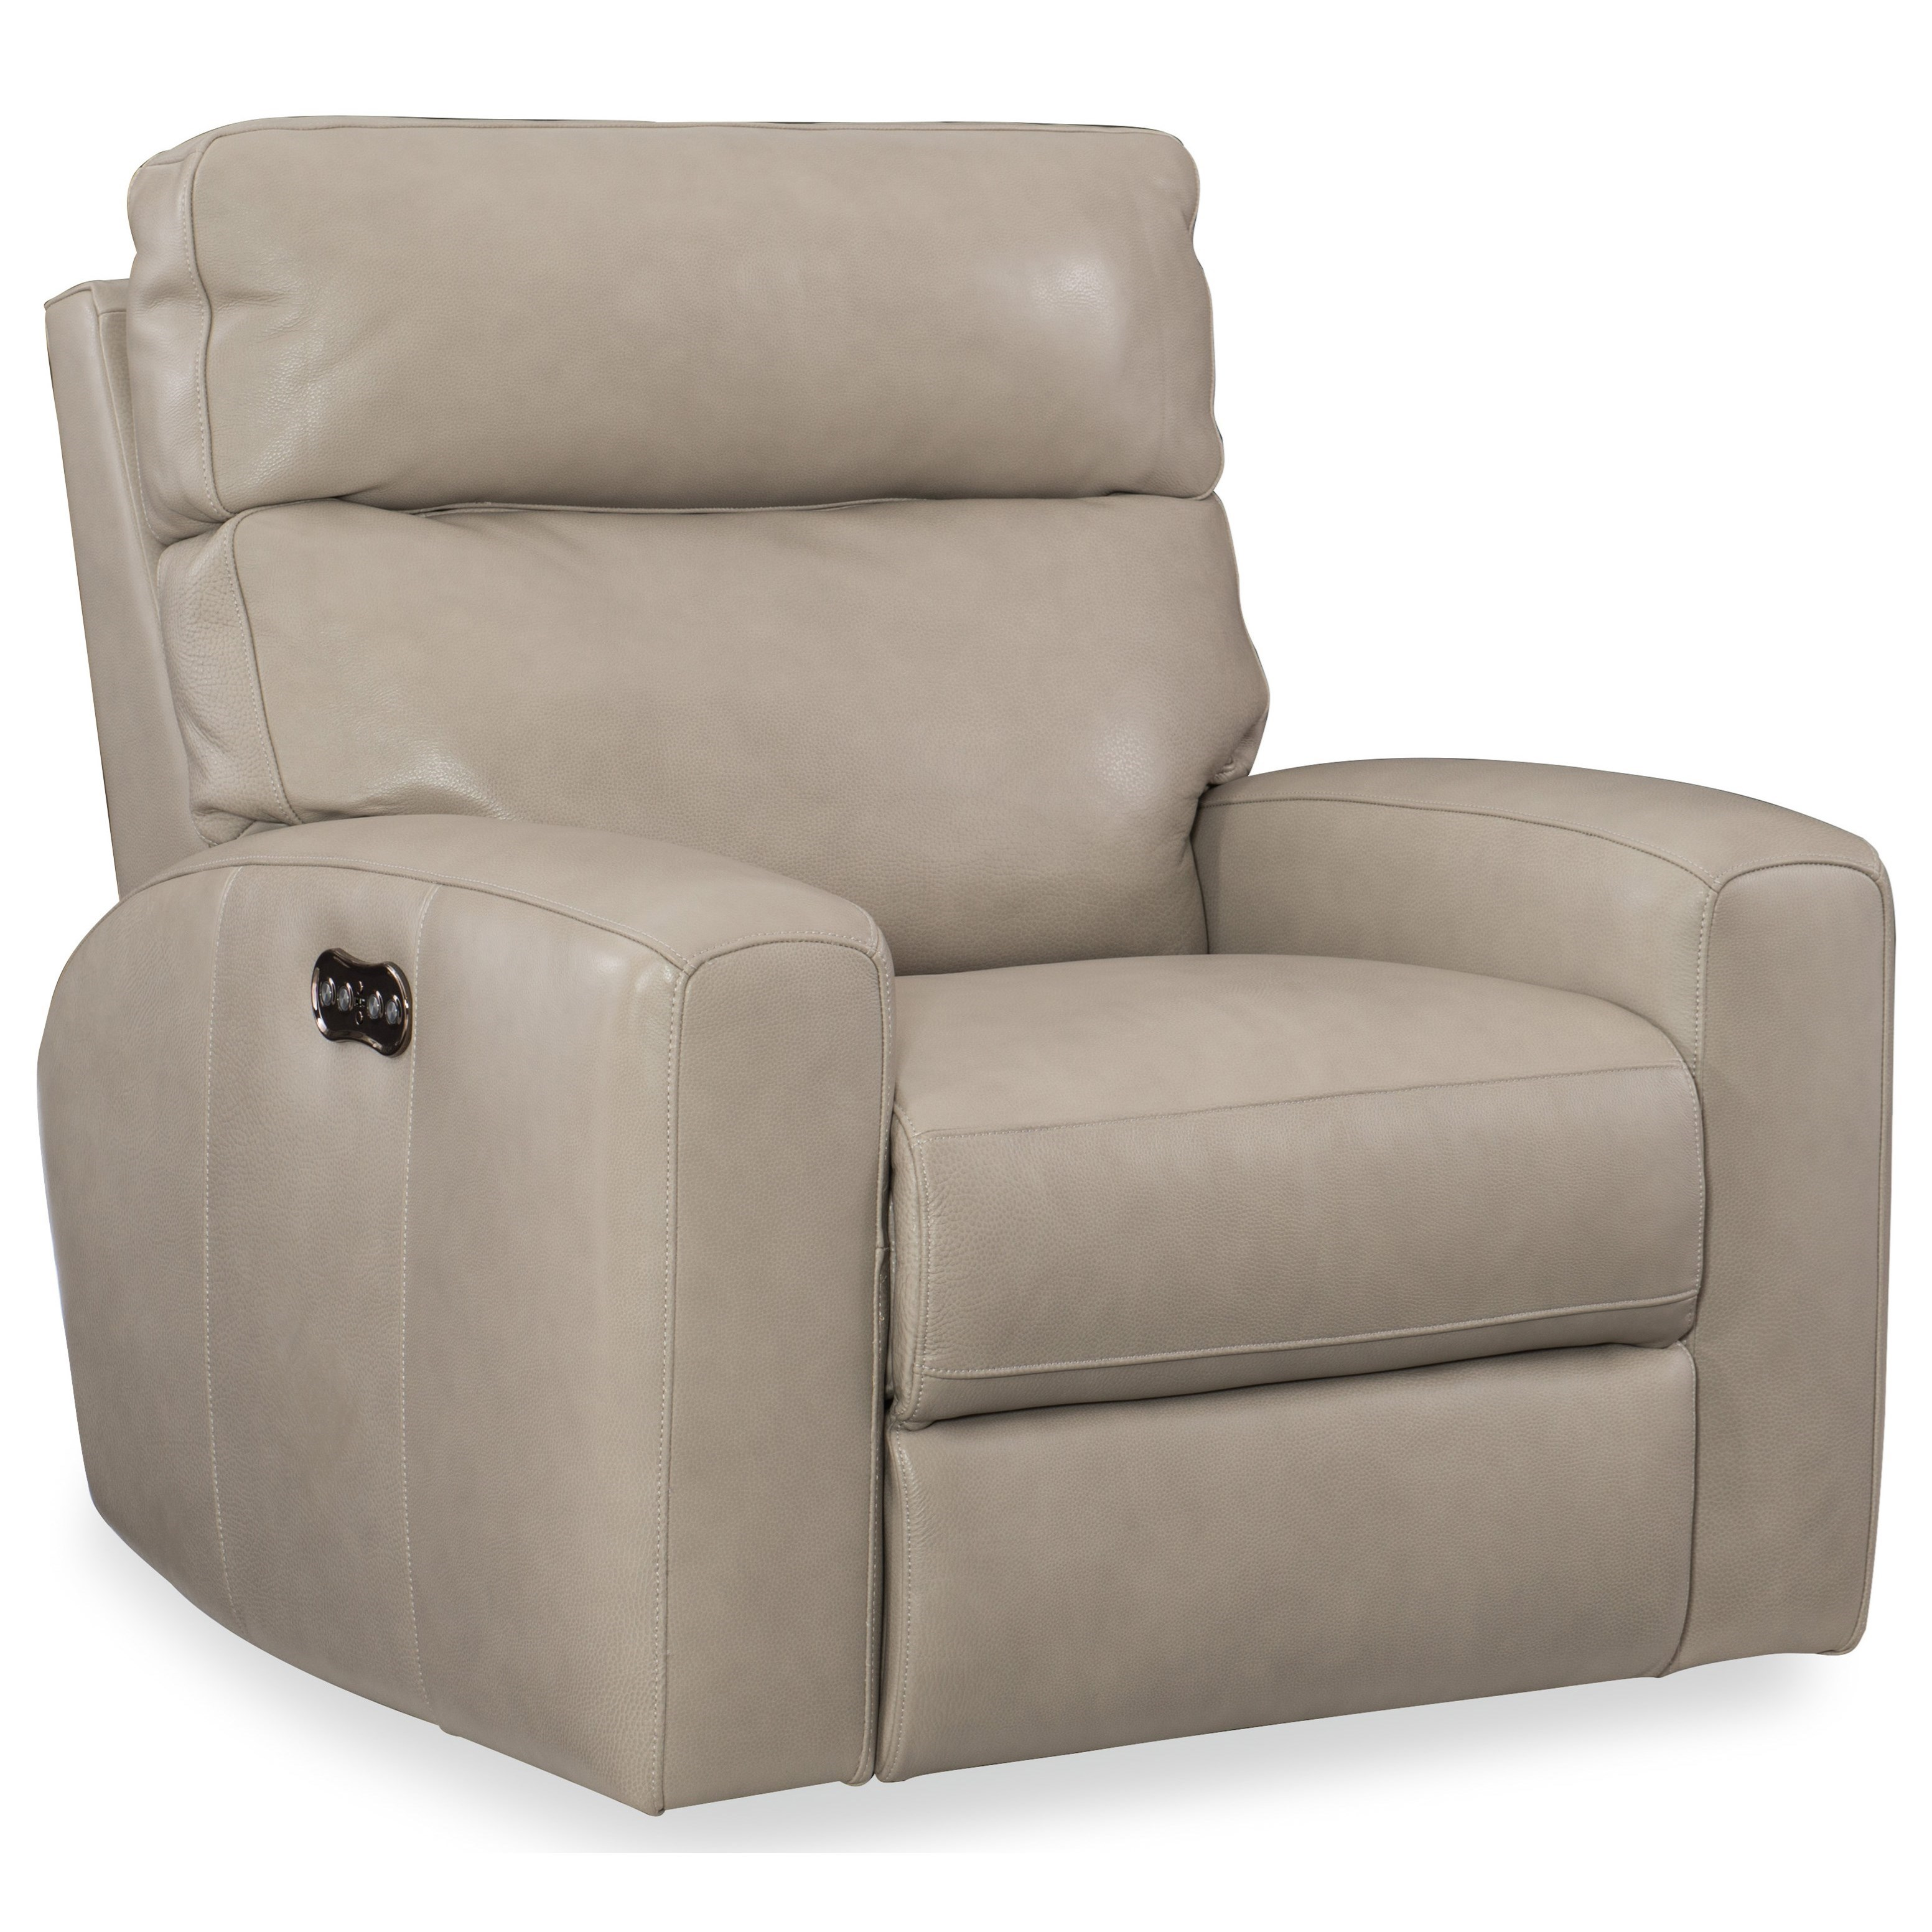 Mowry Power Motion Recliner w/Pwr Hdrest by Hooker Furniture at Baer's Furniture